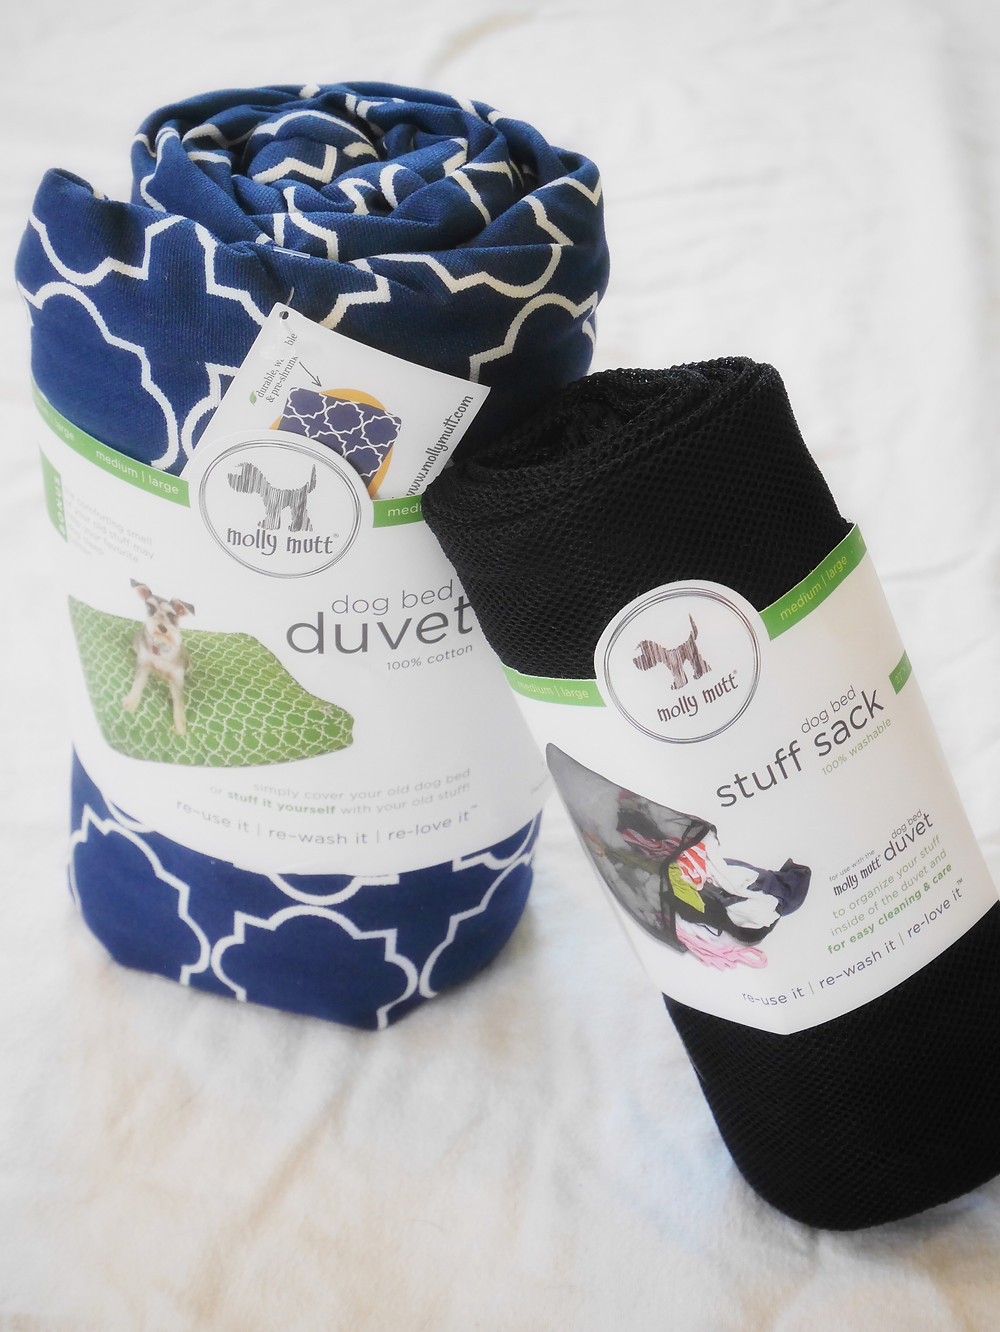 Molly Mutt Duvet in Romeo & Juliet with Stuff Sack